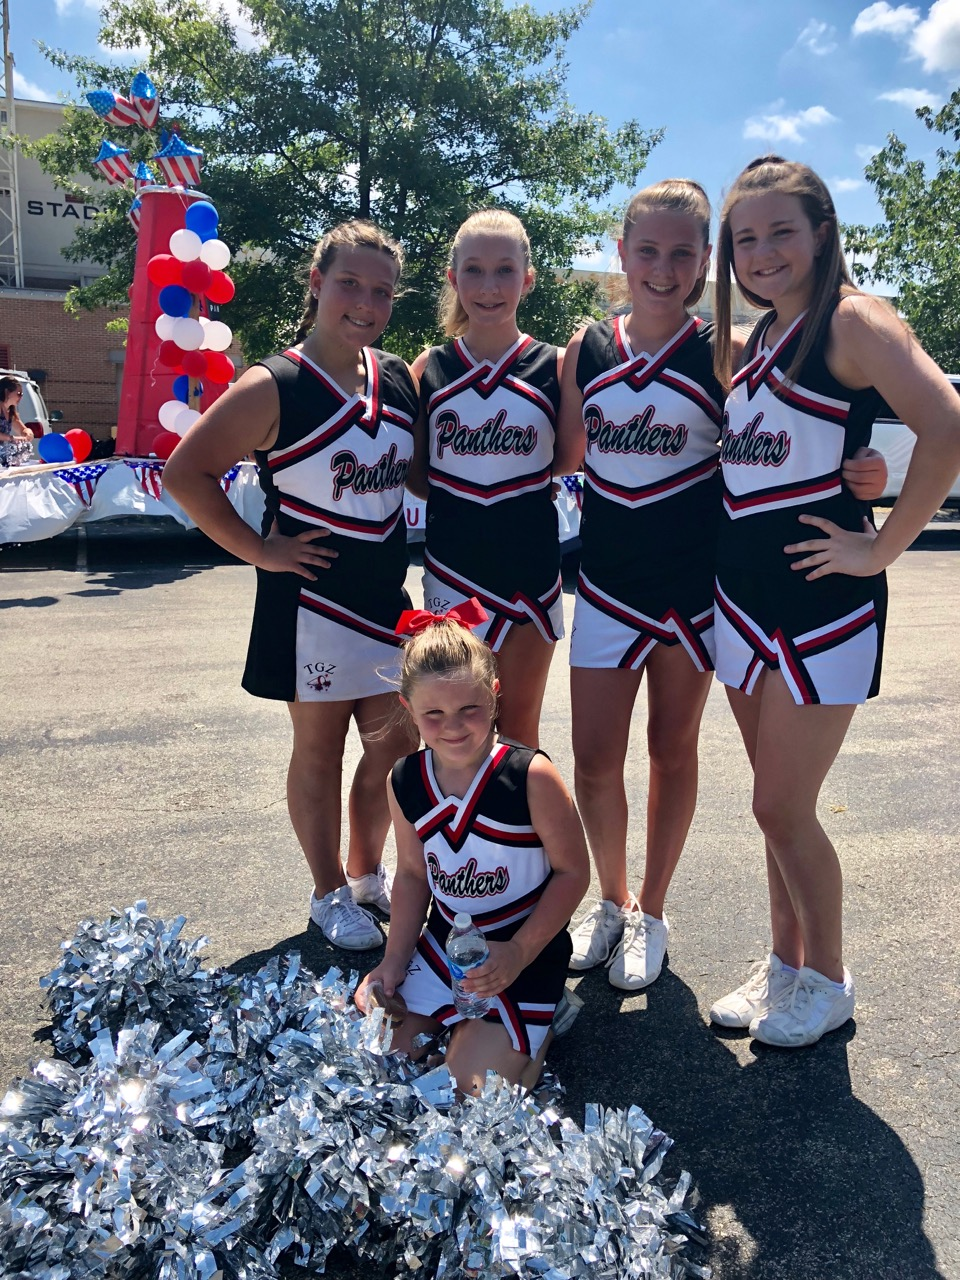 4th of July Parade 2018 - cheerleaders